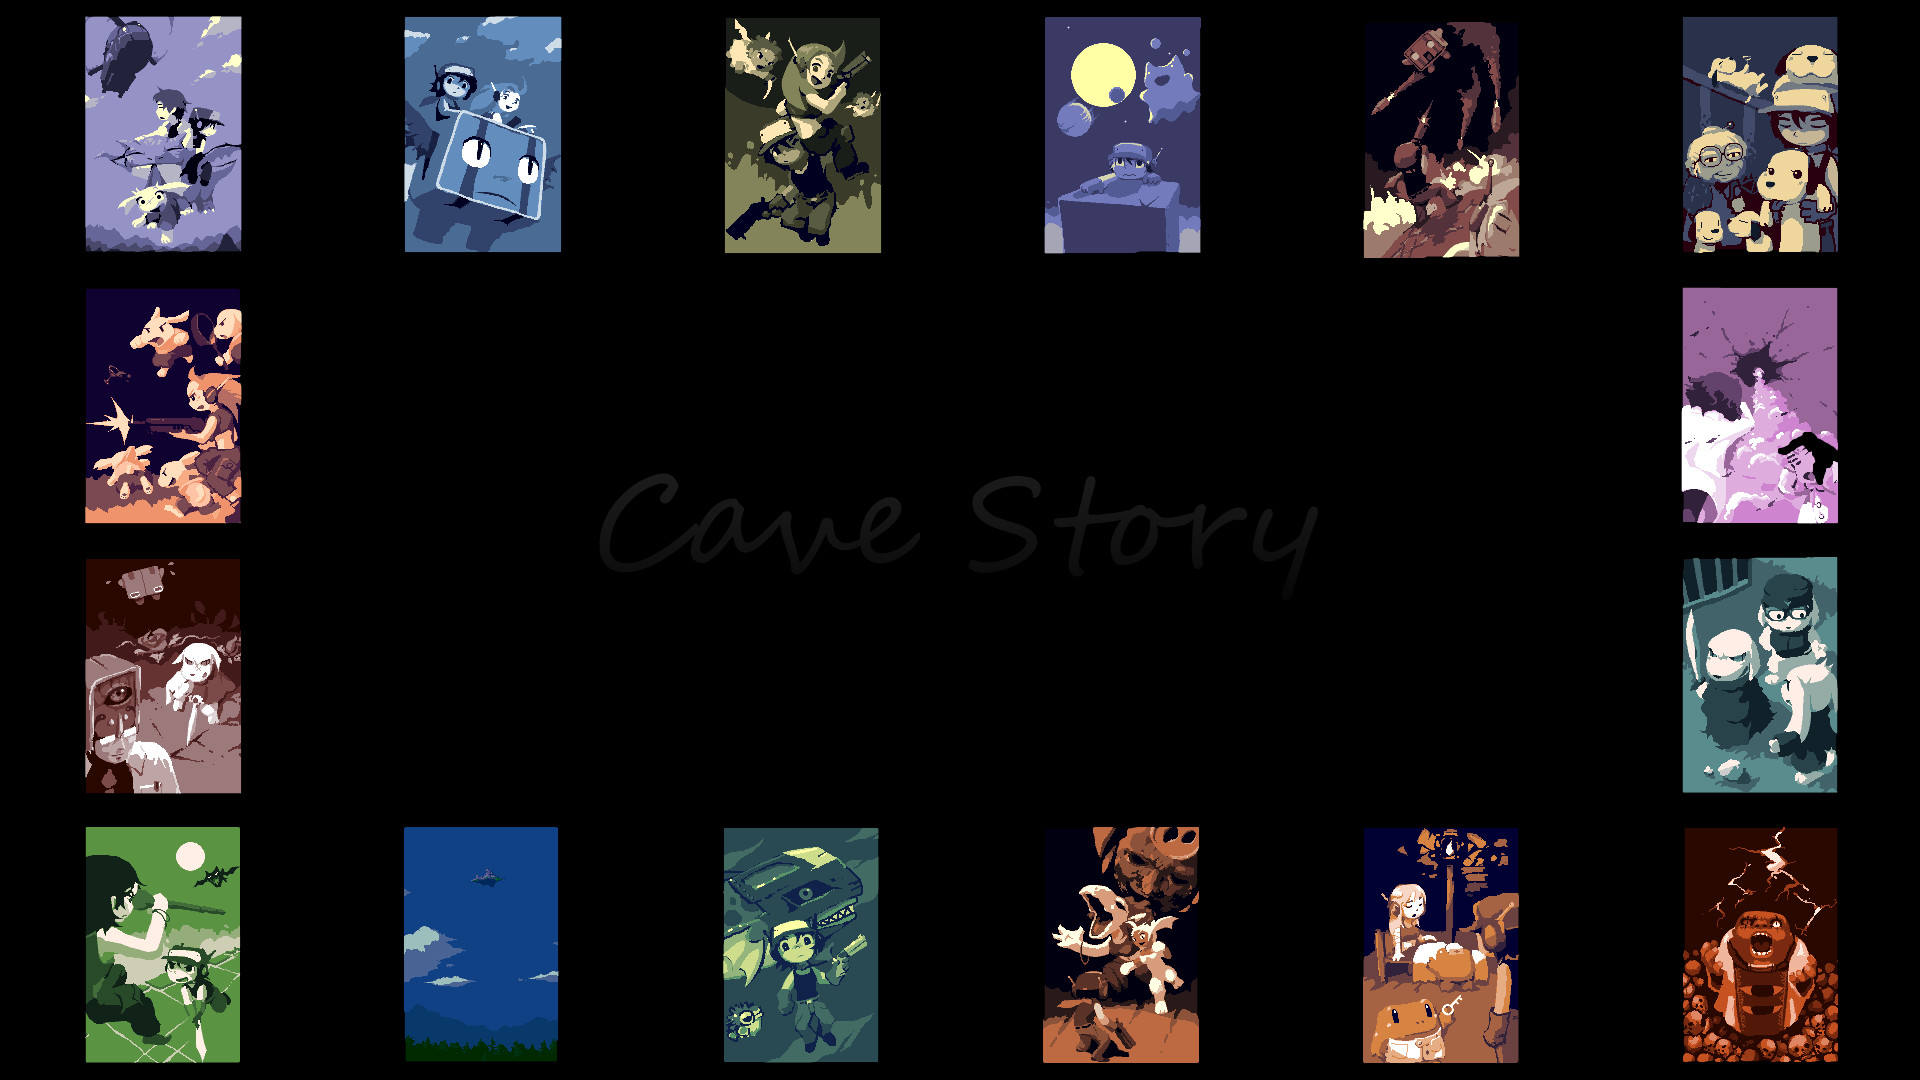 1920x1080 Cave Story!